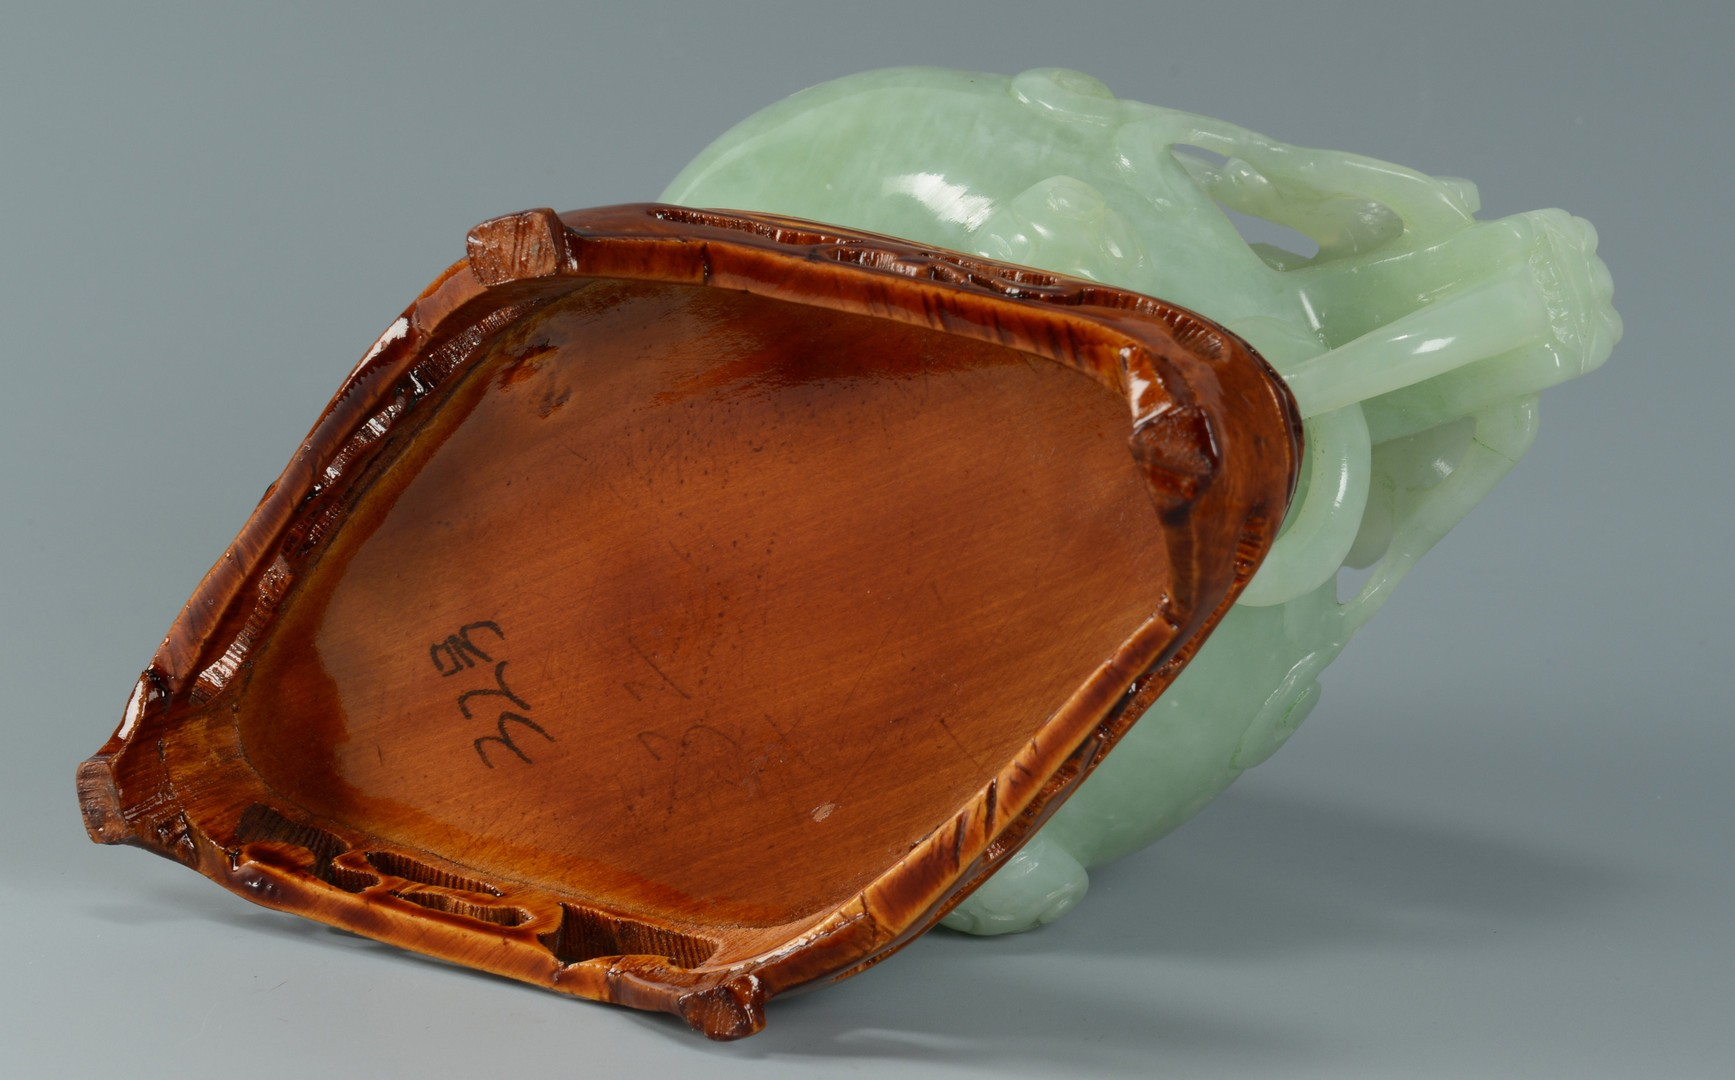 Lot 3383251: Chinese Hardstone Censer, Elephants and Tree